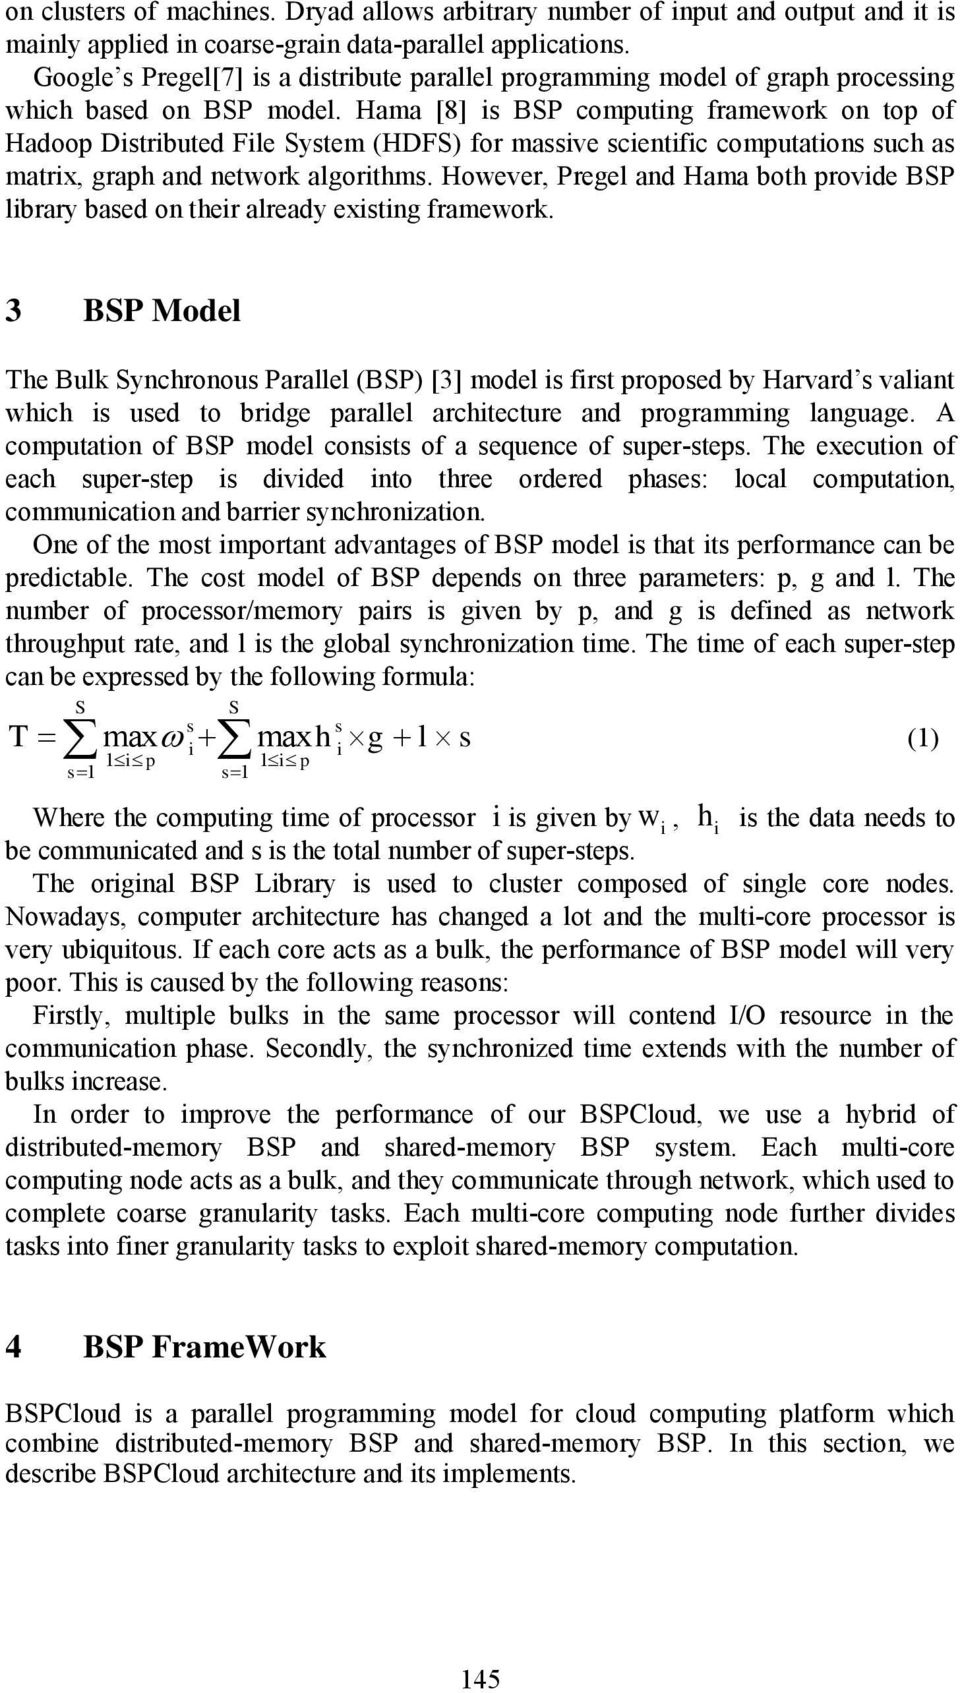 Hama [8] is BSP computing framework on top of Hadoop Distributed File System (HDFS) for massive scientific computations such as matrix, graph and network algorithms.